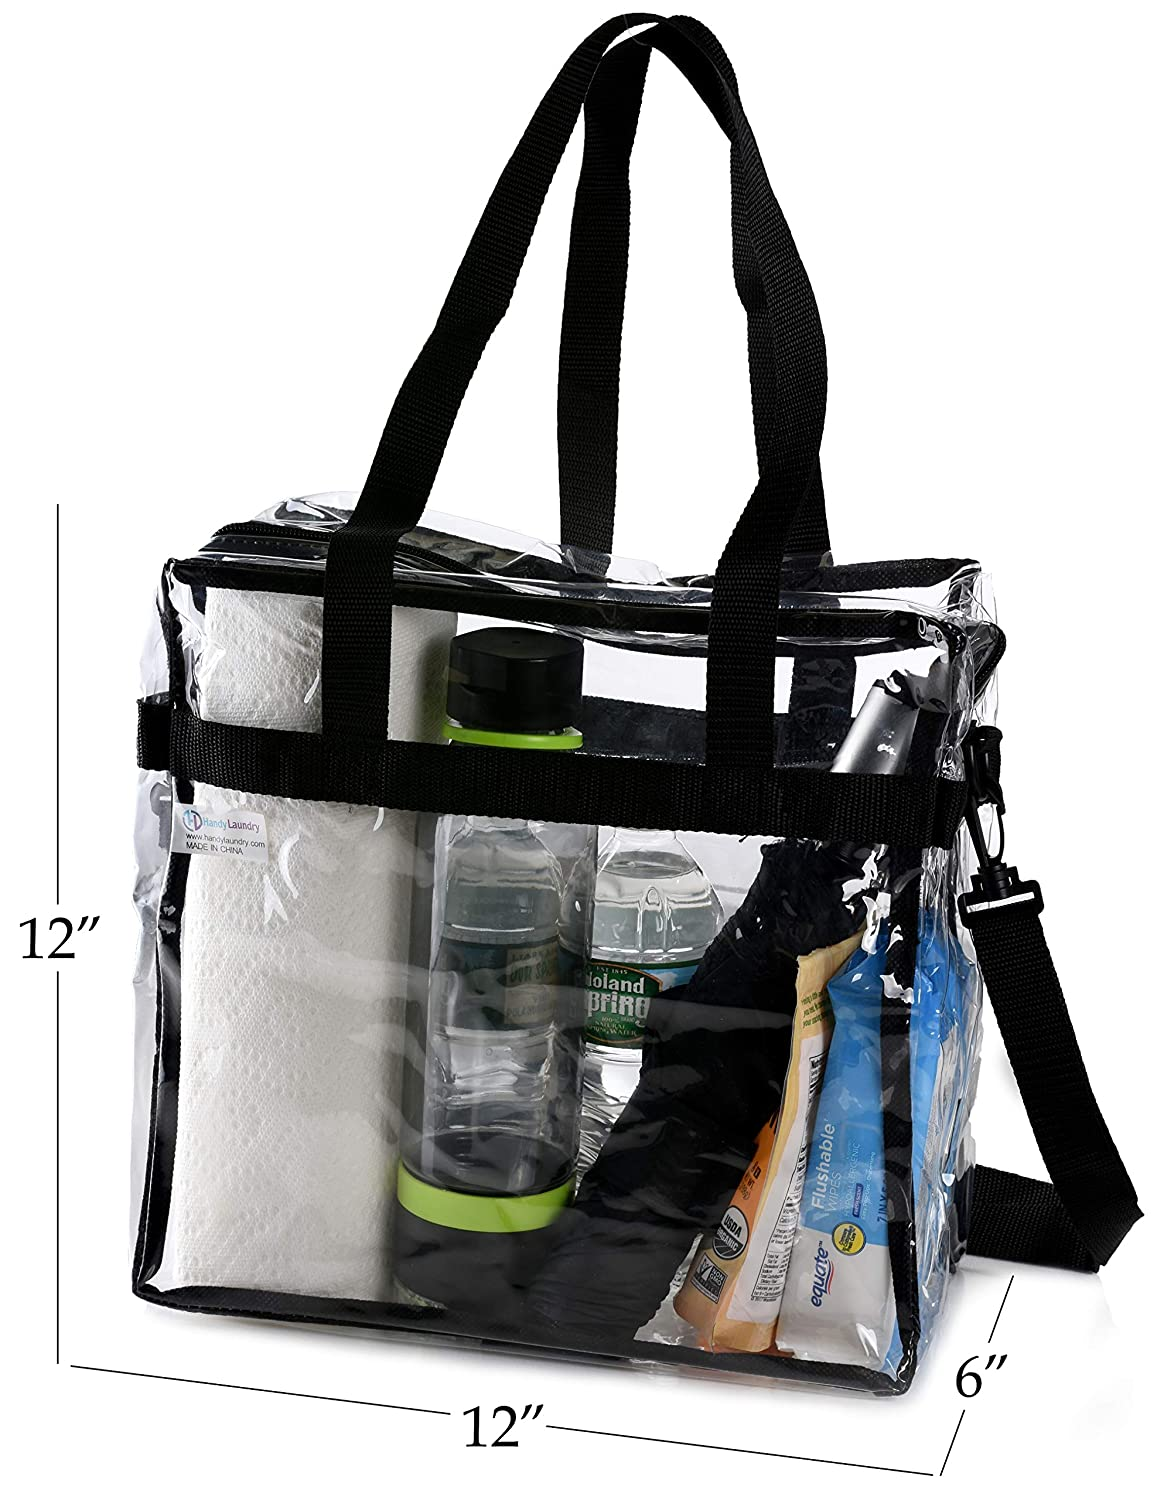 ffb9aa018f8 Amazon.com : Clear Tote Bag NFL Stadium Approved - 12